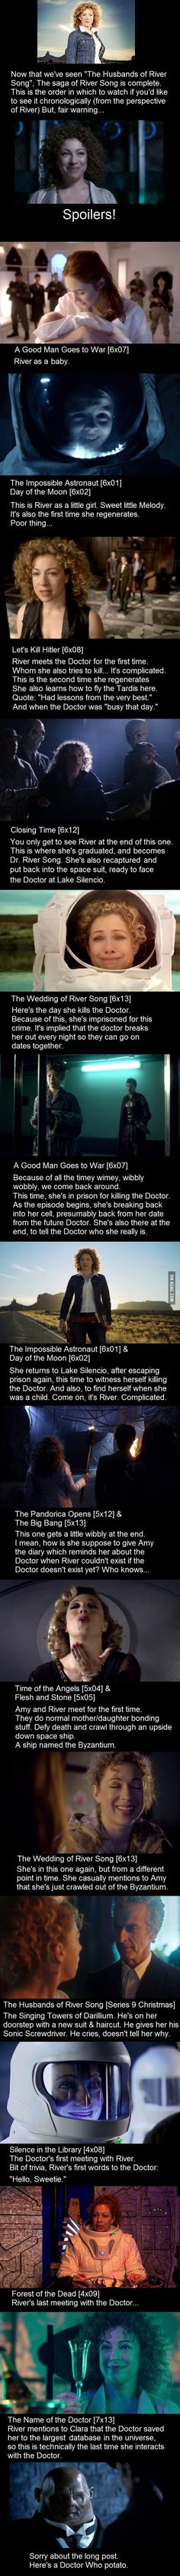 River Song's Timeline. Watch in this order if you'd like to see River's journey in Doctor Who River Song's Timeline. Watch in this order if you'd like to see River's journey in Doctor Who … Tardis, Alex Kingston, Fandoms Unite, River Song Timeline, Serie Doctor, Journey, Hello Sweetie, Don't Blink, Torchwood